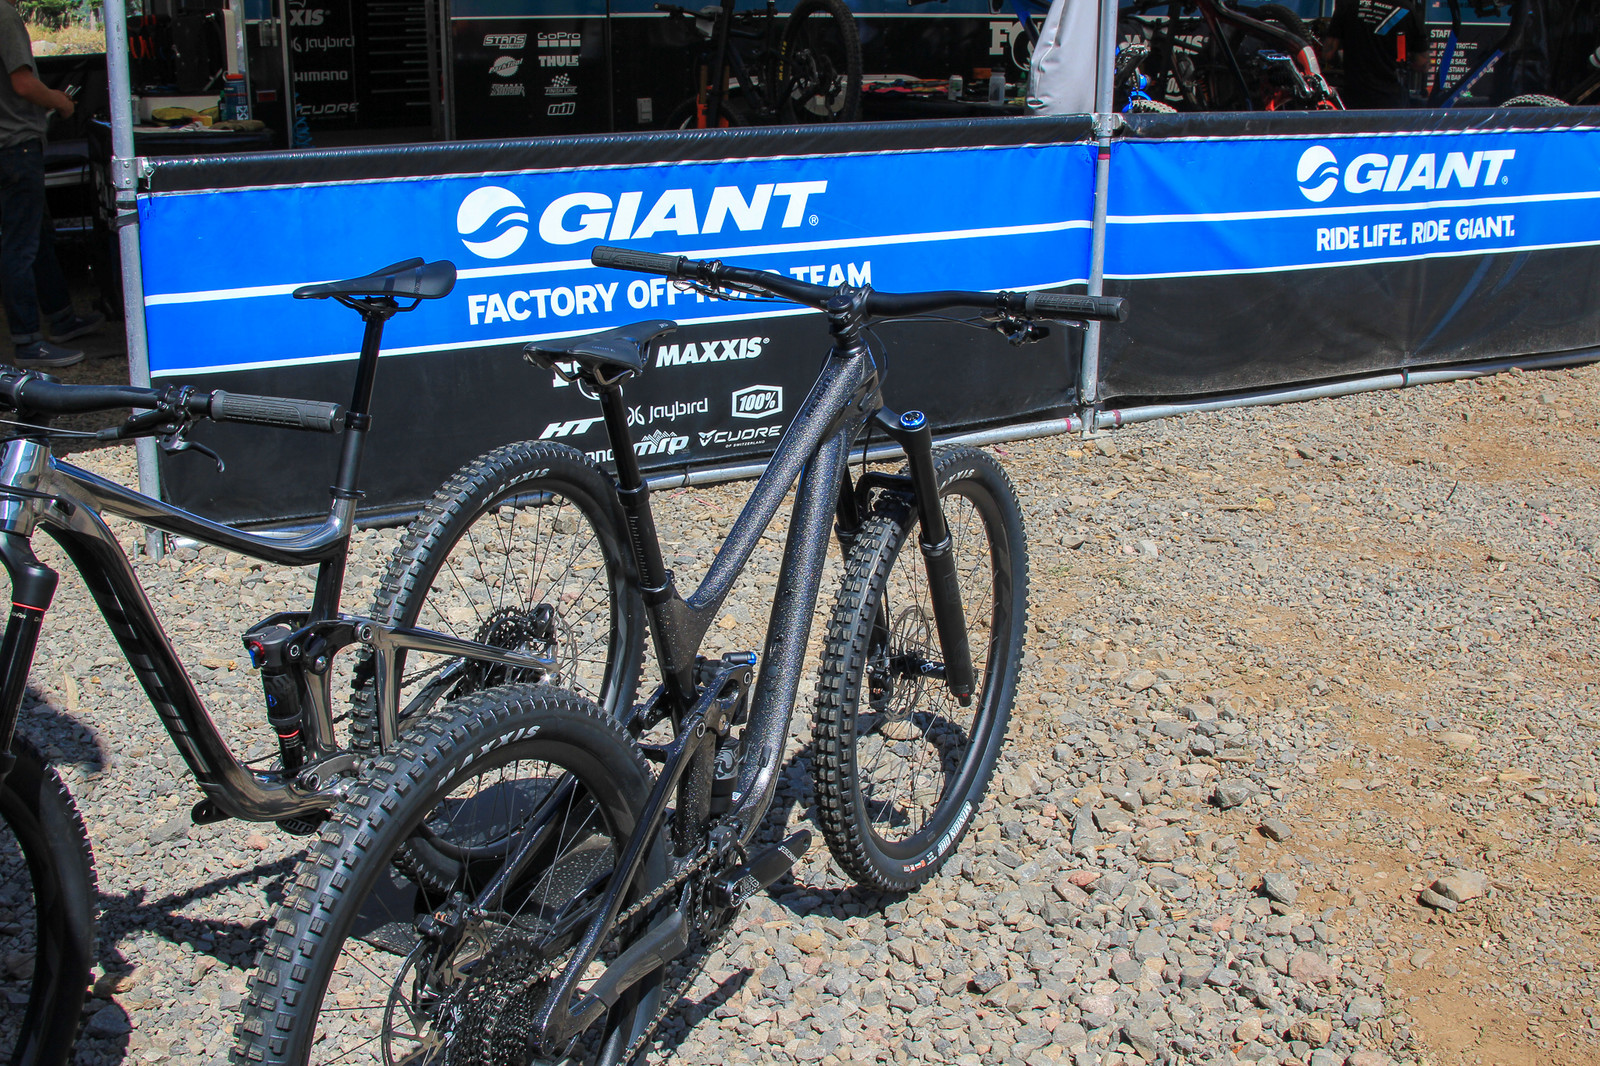 Bass Boat - Pit Bits 2019 Enduro World Series - Northstar - Mountain Biking Pictures - Vital MTB